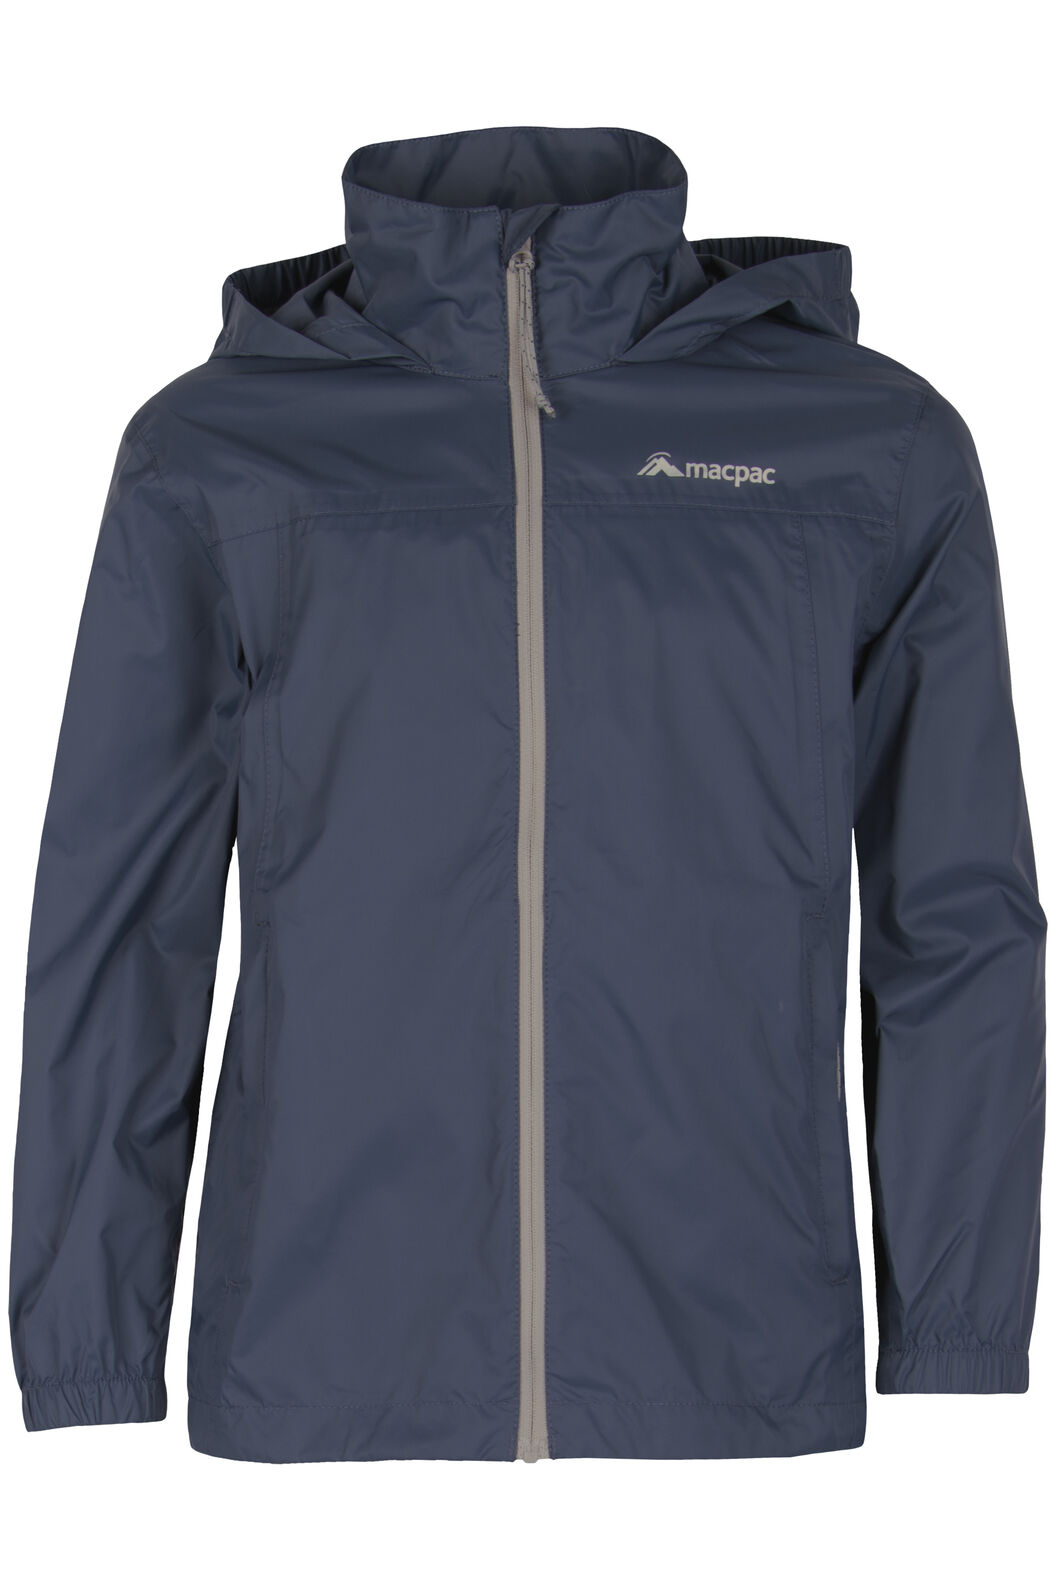 Macpac Pack-It-Jacket - Kids', Midnight Navy, hi-res